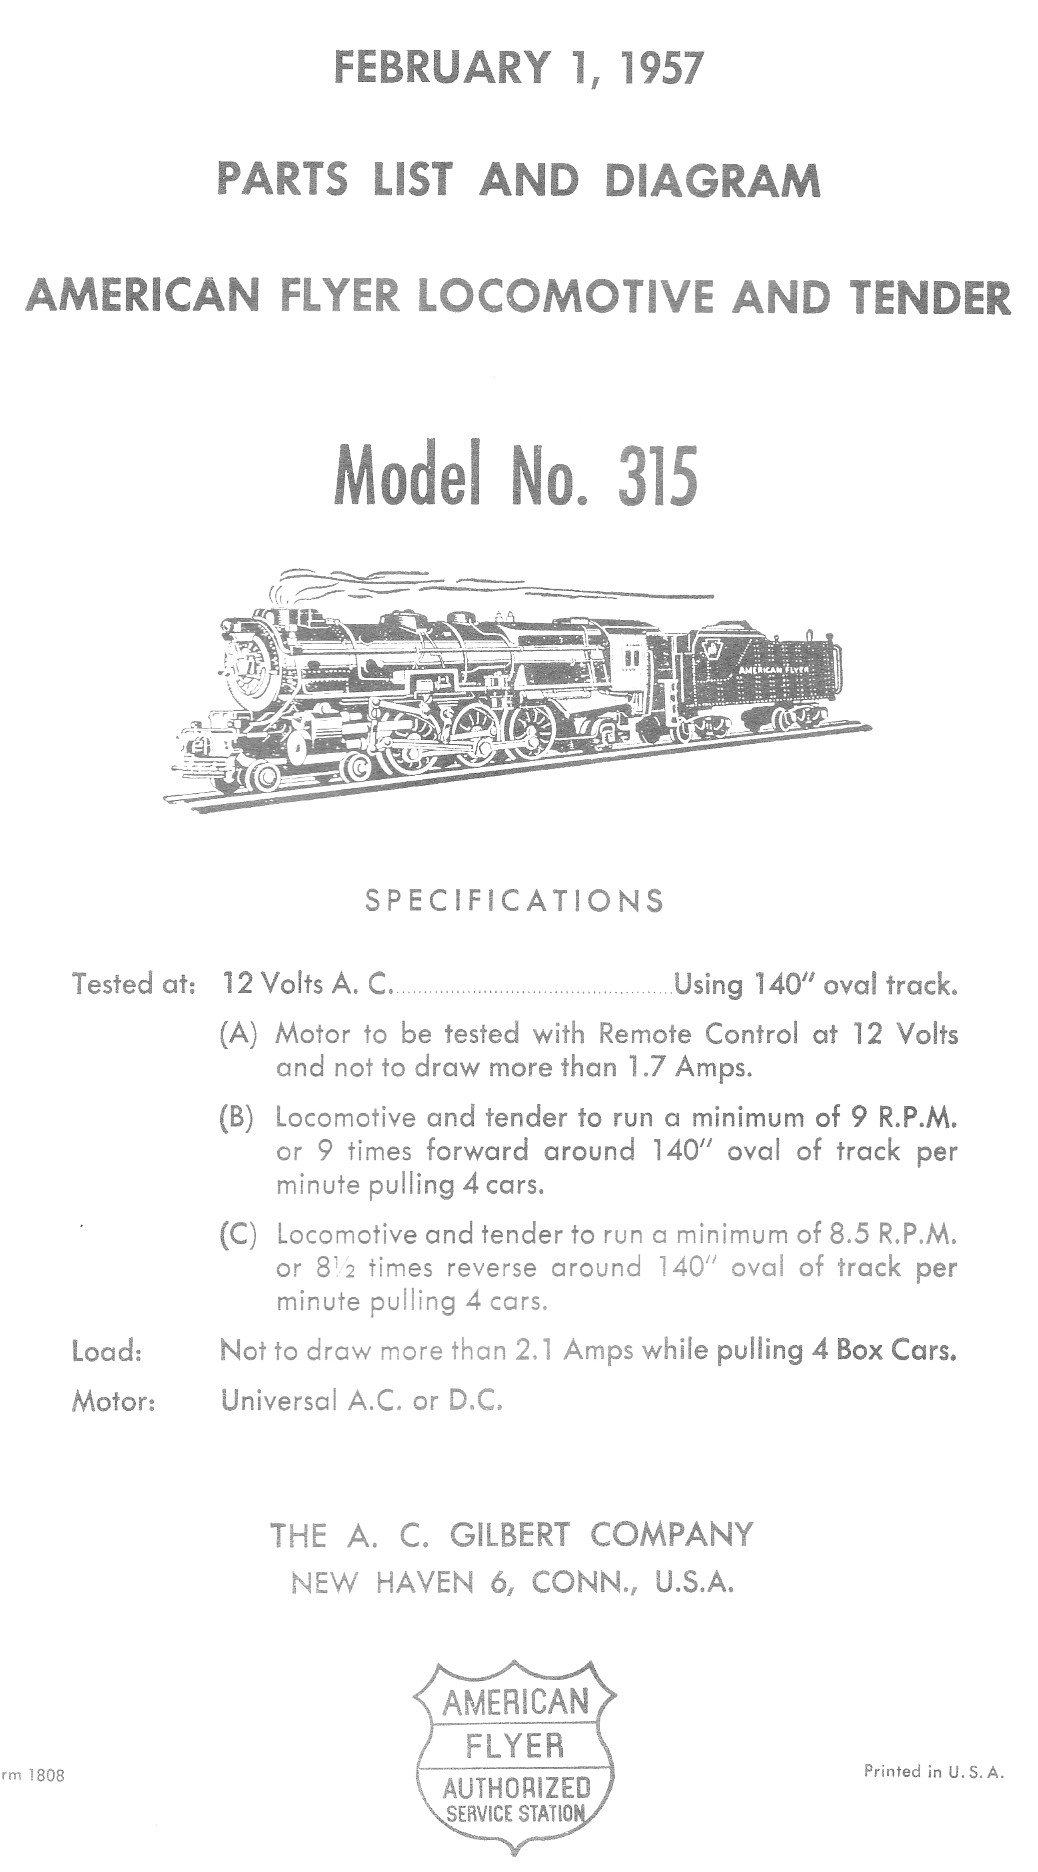 American Flyer Locomotive & Tender 315 Parts List and Diagram - Page 1